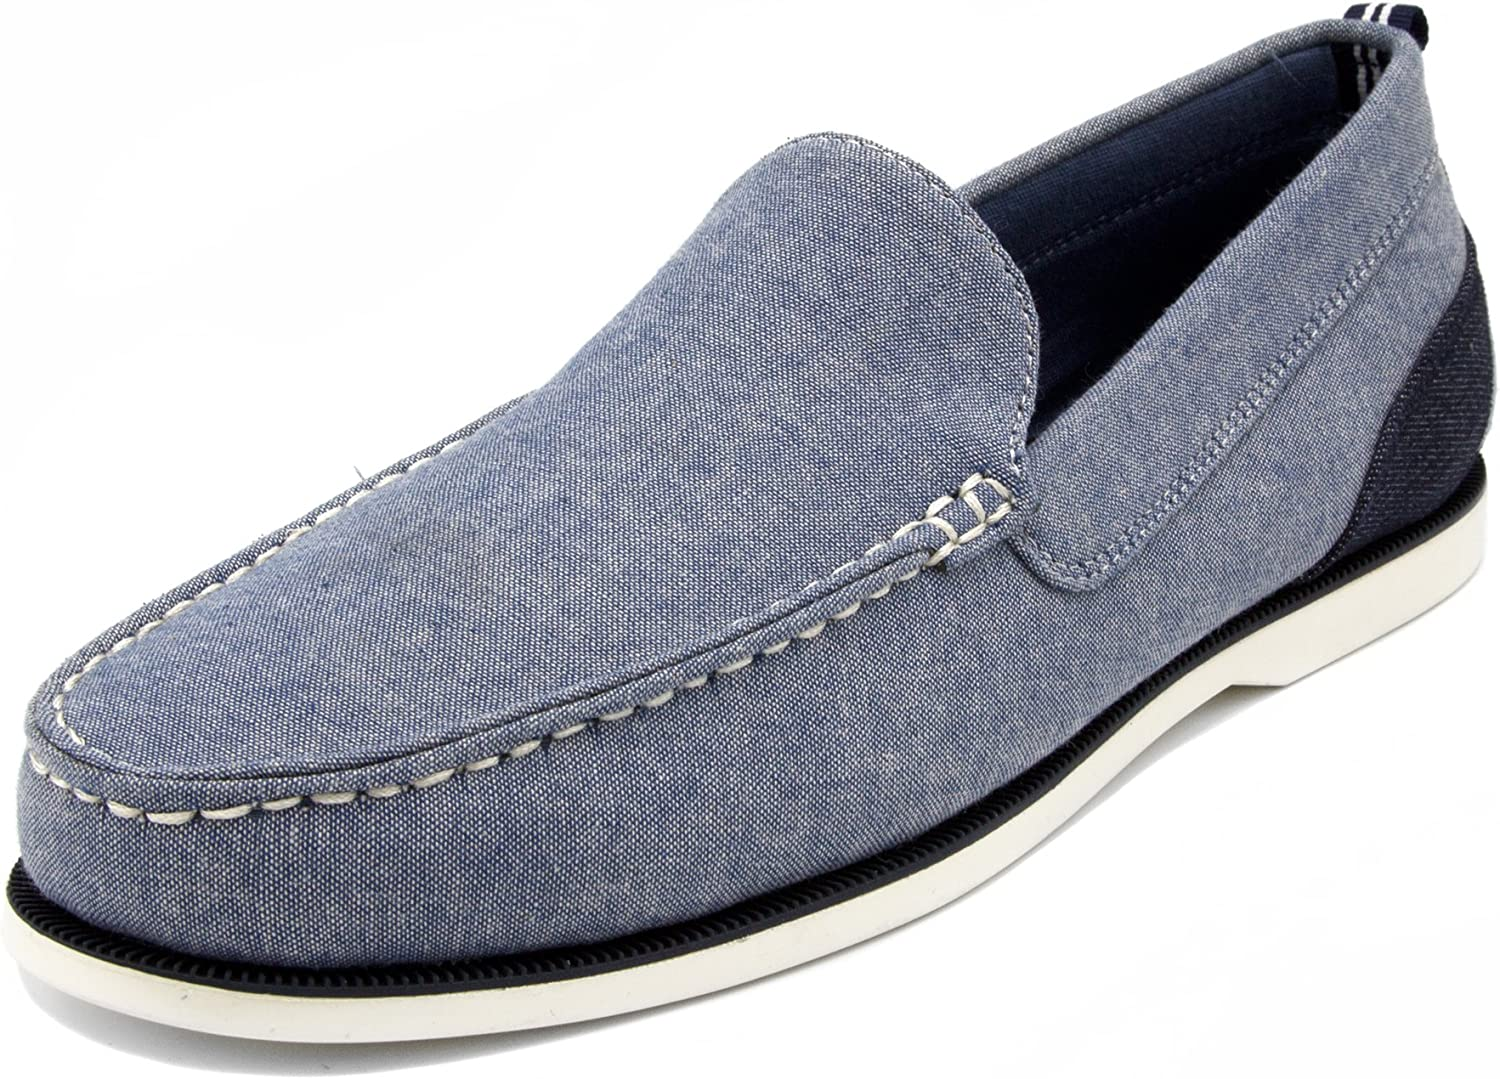 Nautica Men's Minter Boat Shoe